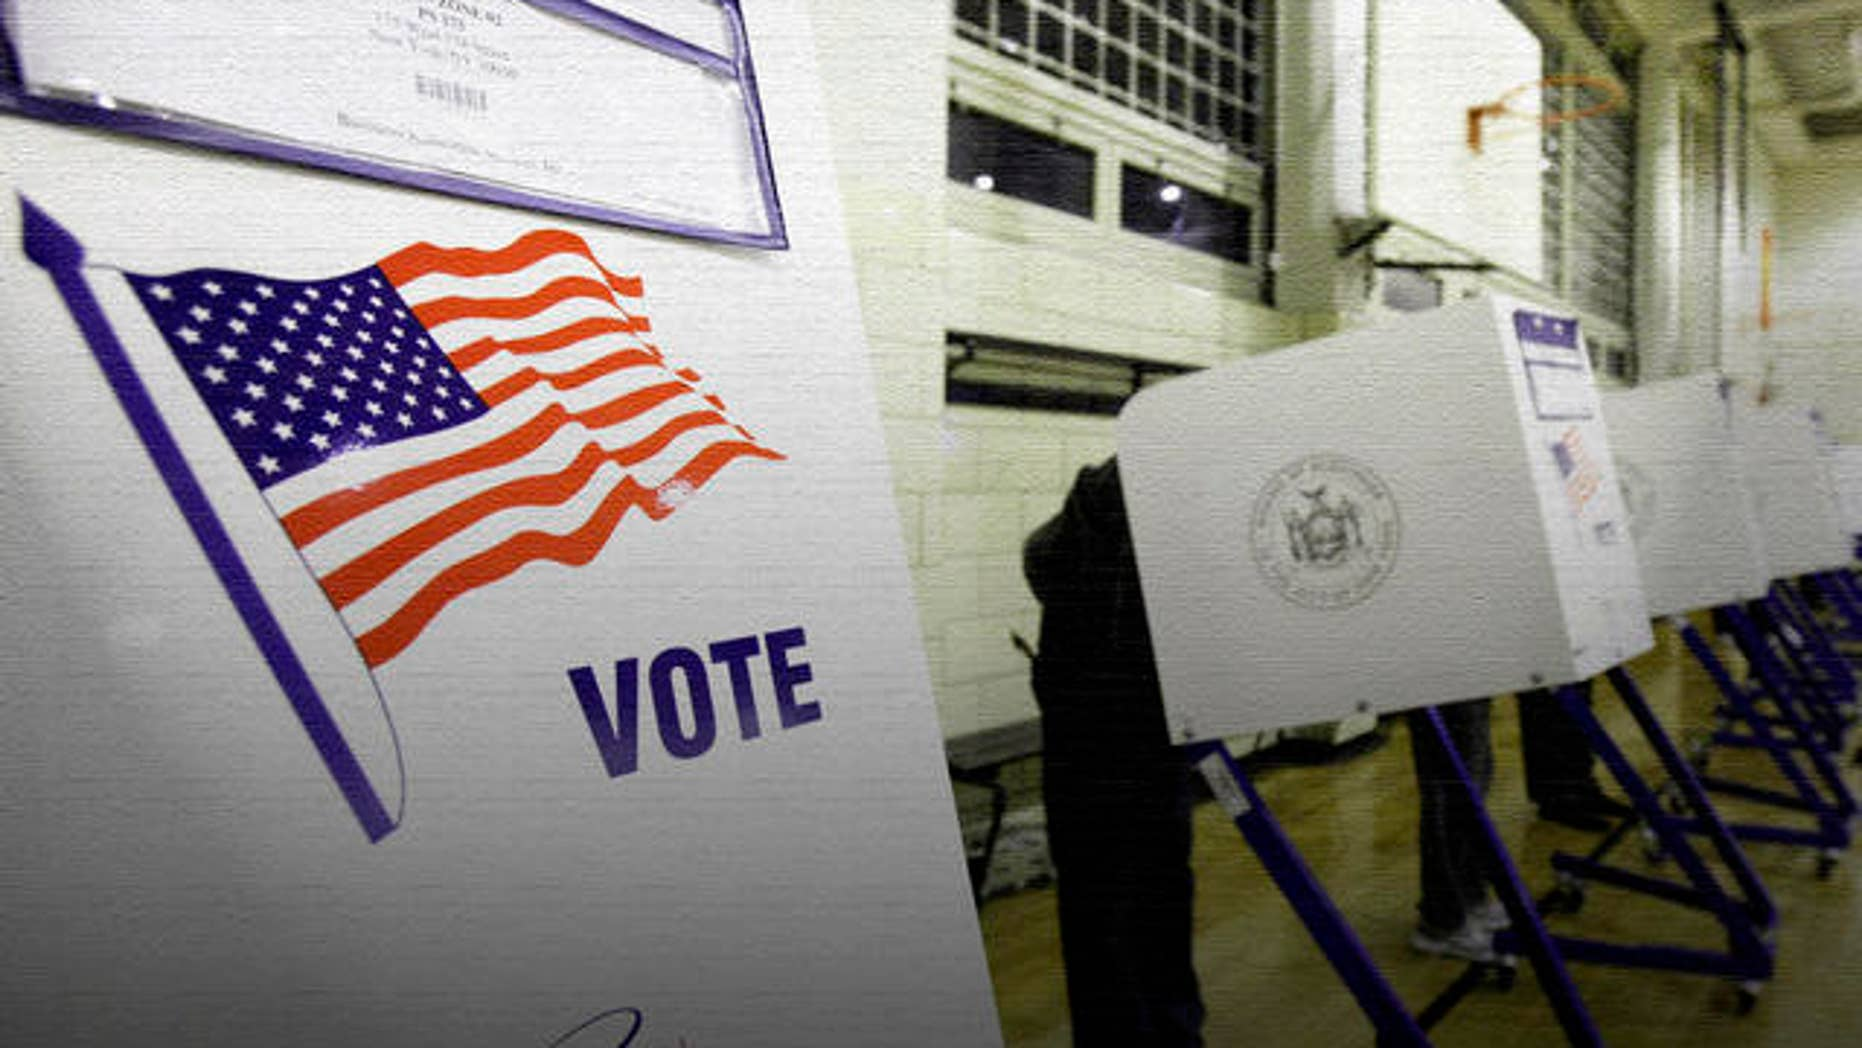 Voting machines on election day, 11/2/10